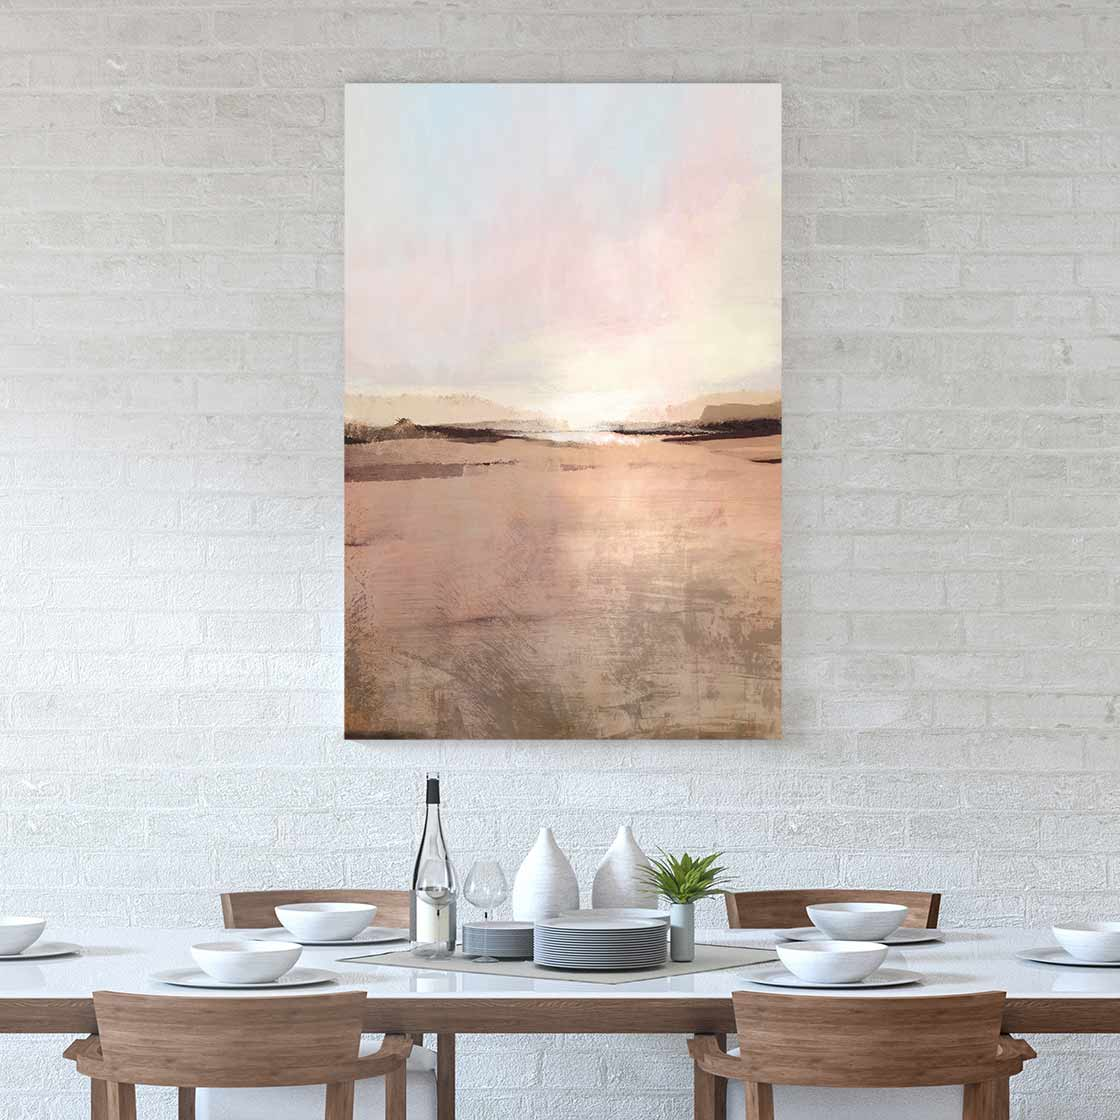 New Dawn - Canvas Print by Dan Hobday | Art Bloom Canvas Art